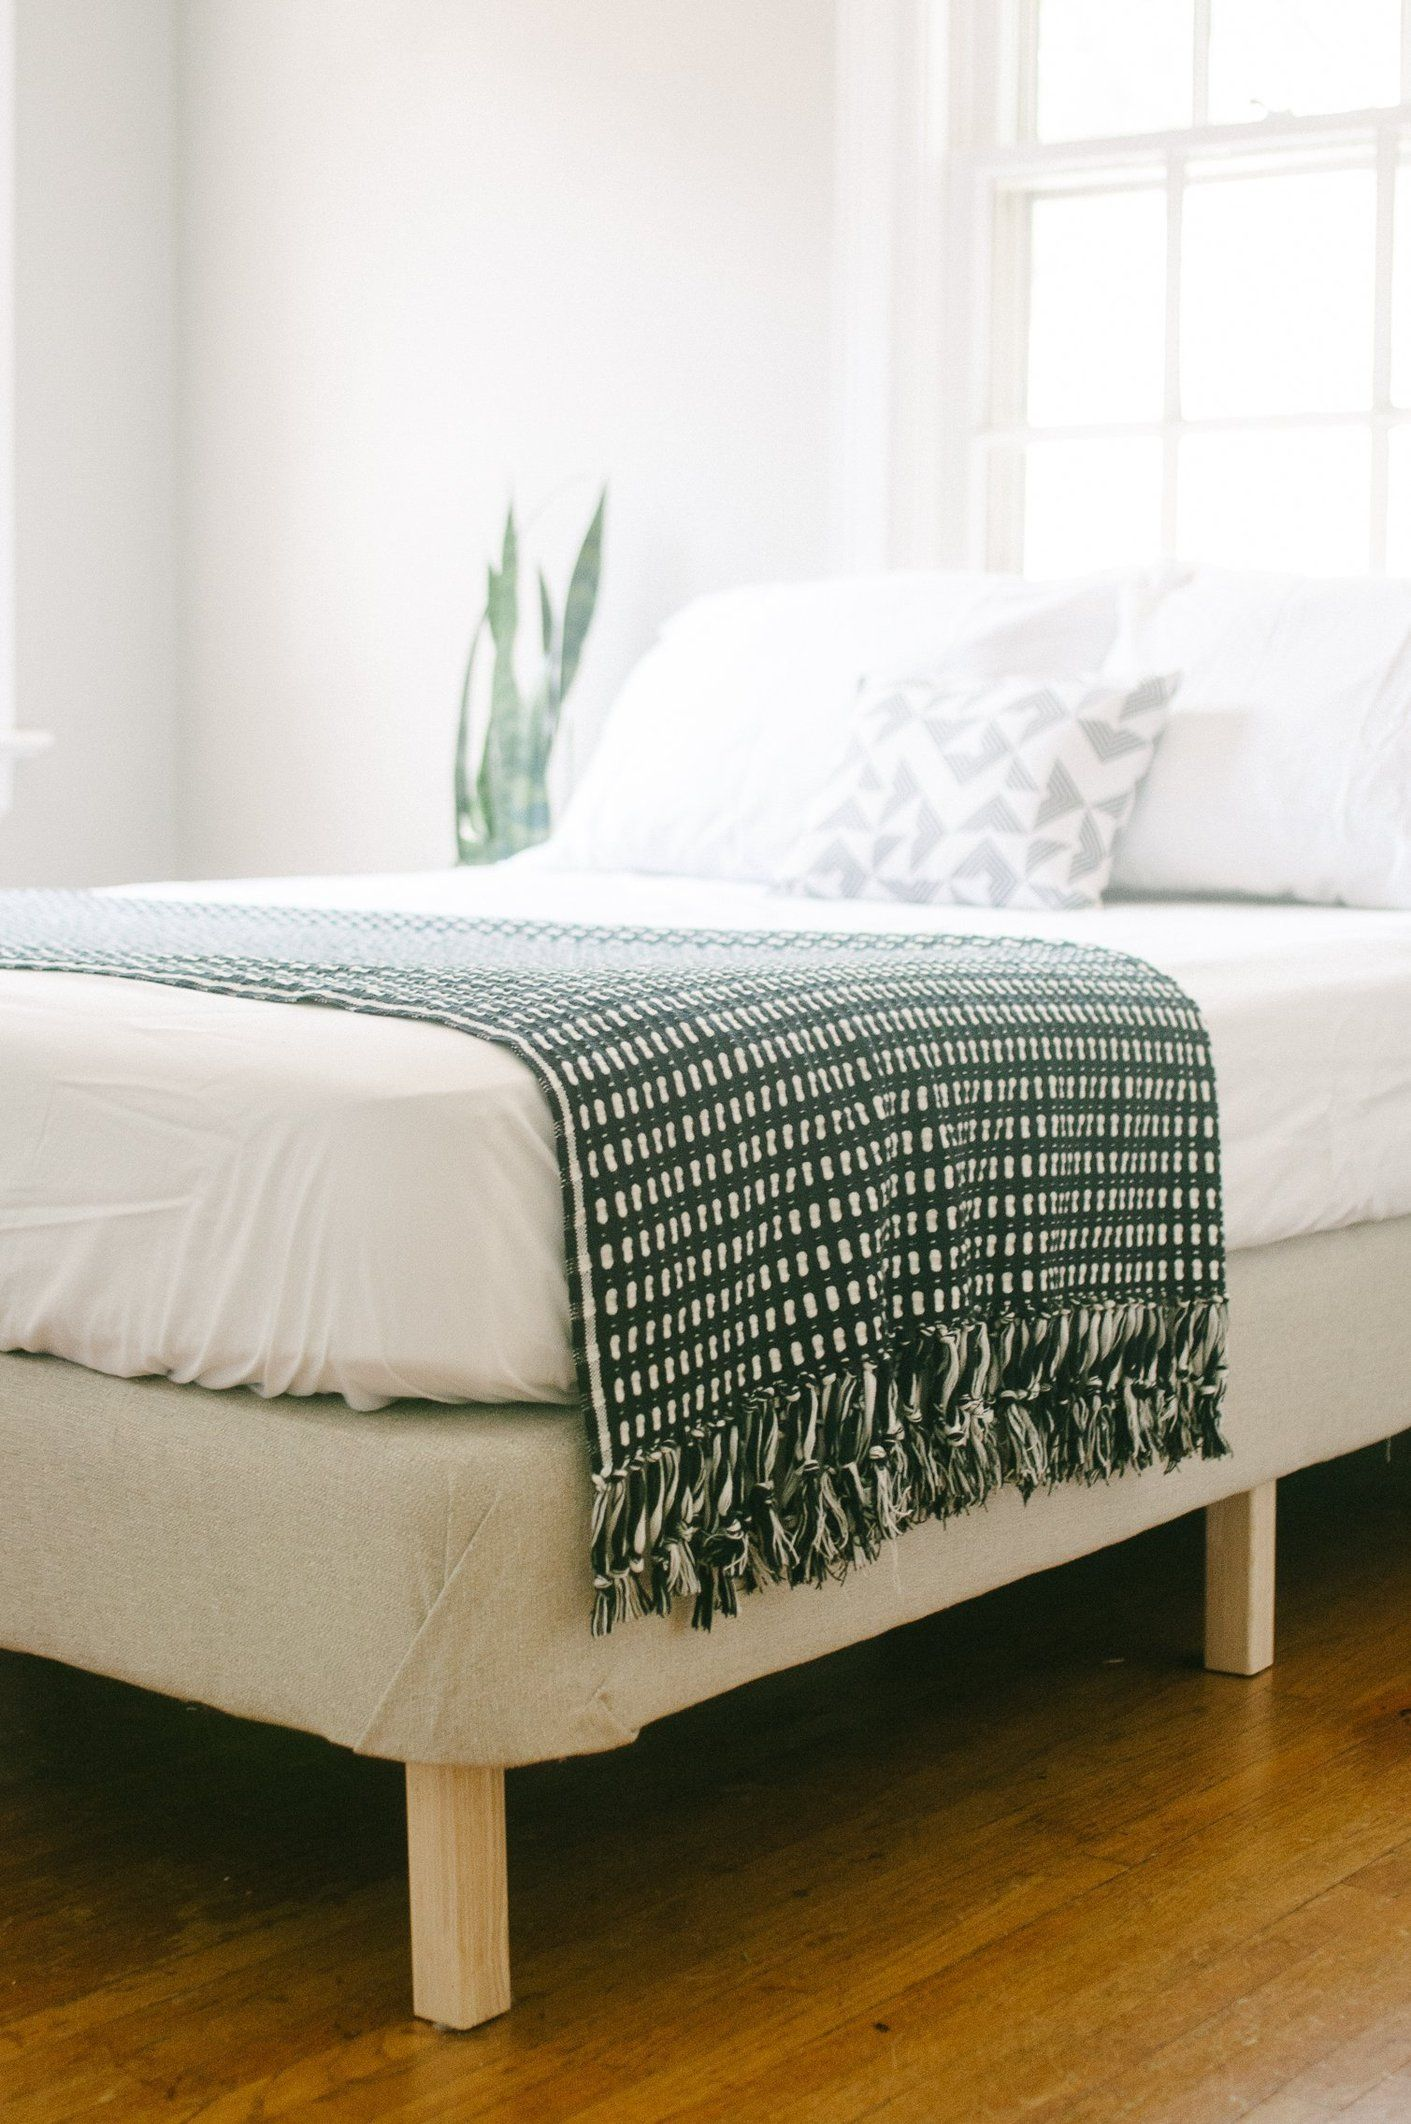 Best Try This Diy Project Turn An Old Box Spring Mattress 400 x 300